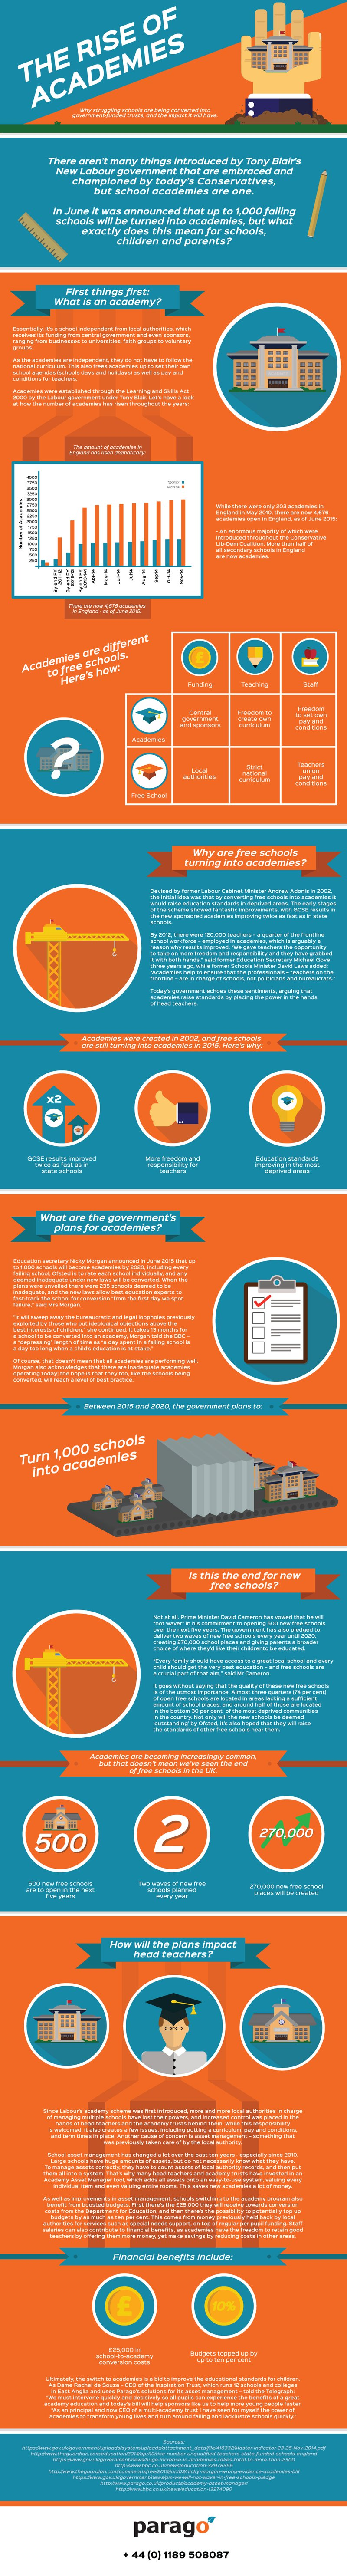 Rise of Academies Infographic